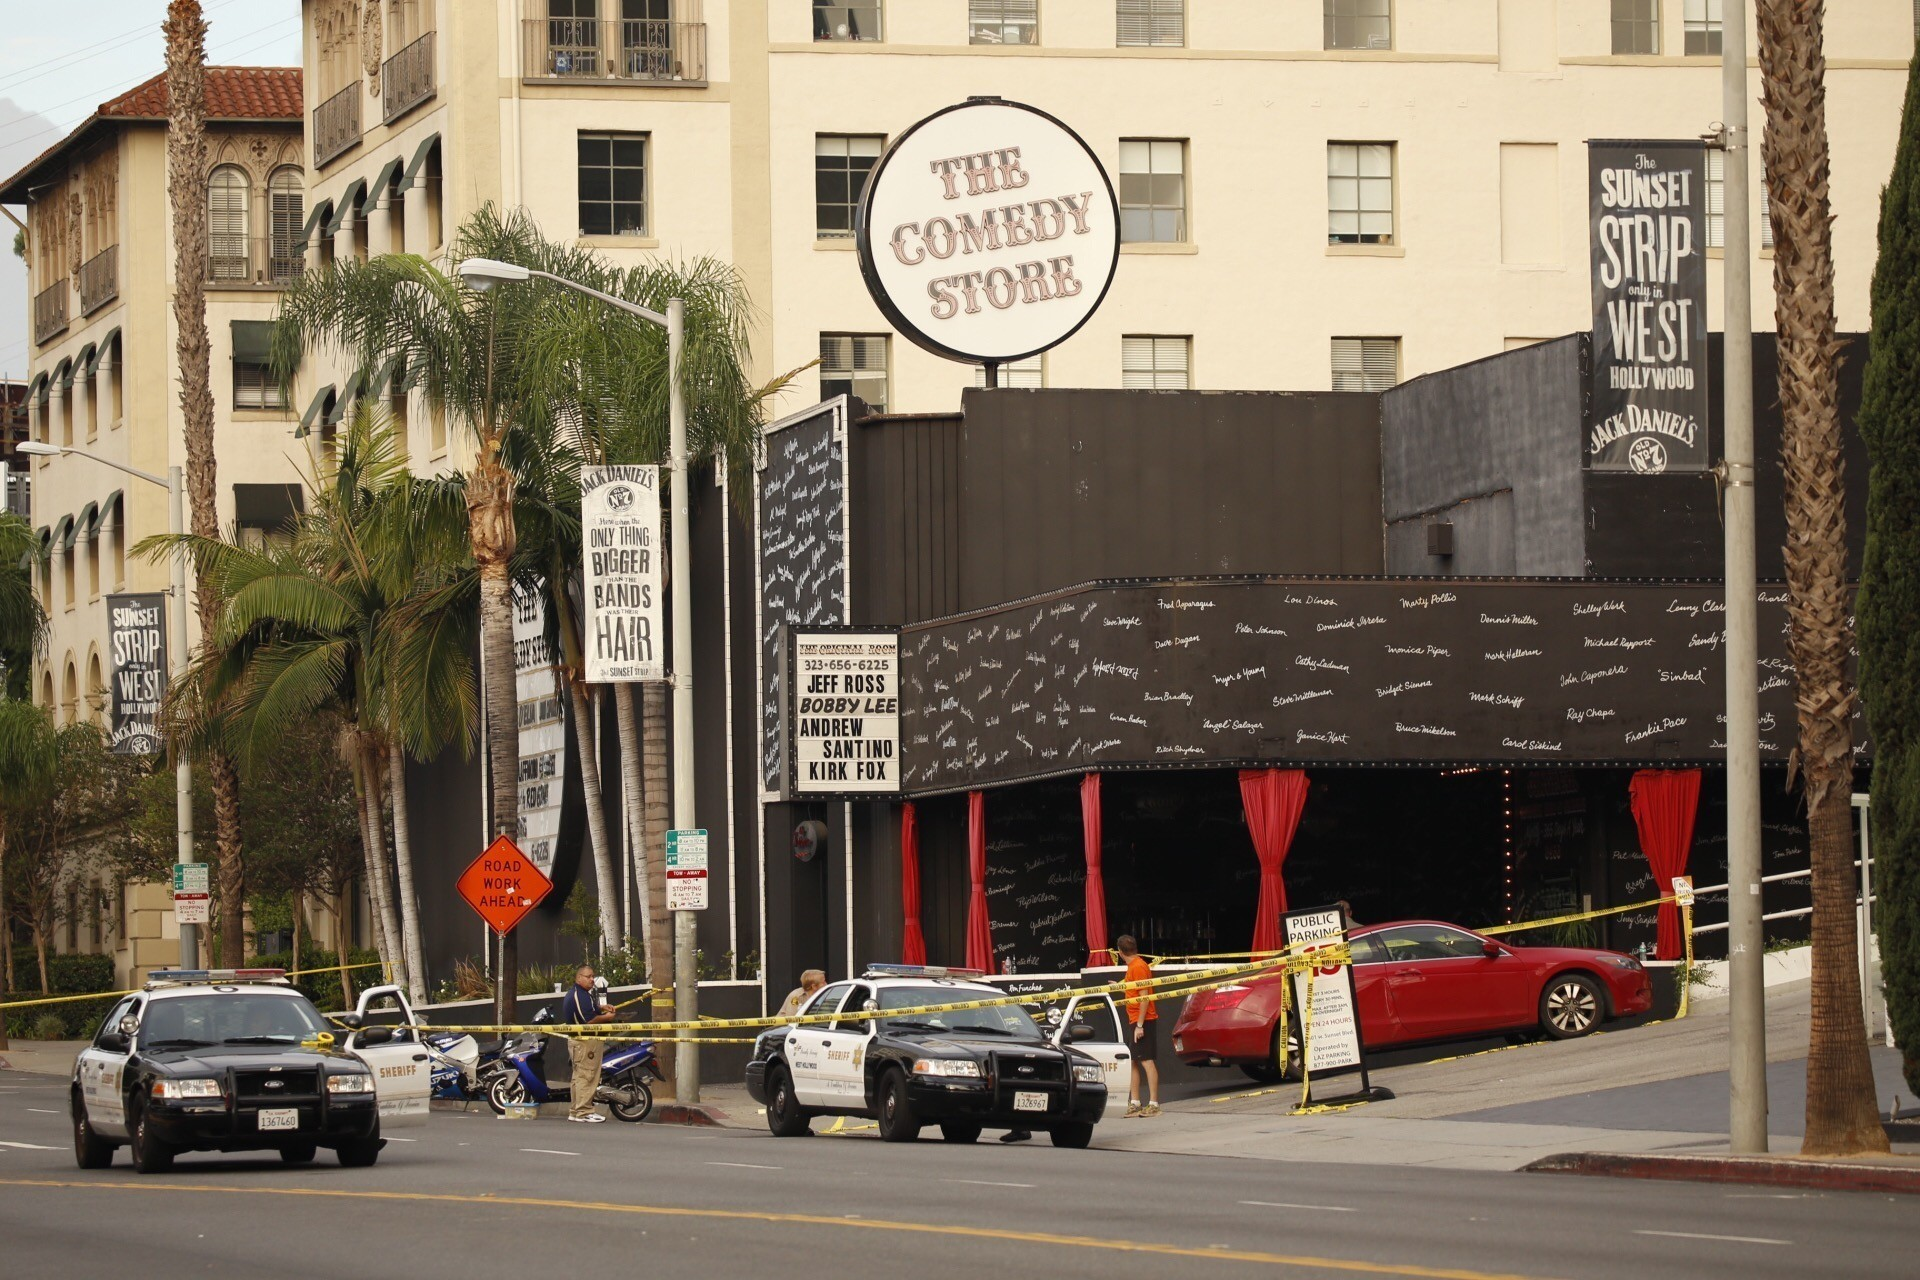 The Comedy Store is an American comedy club located in West Hollywood, California, at Sunset Boulevard on the Sunset xfvpizckltjueoy.cf has a sister comedy club in La Jolla, San Diego, California.